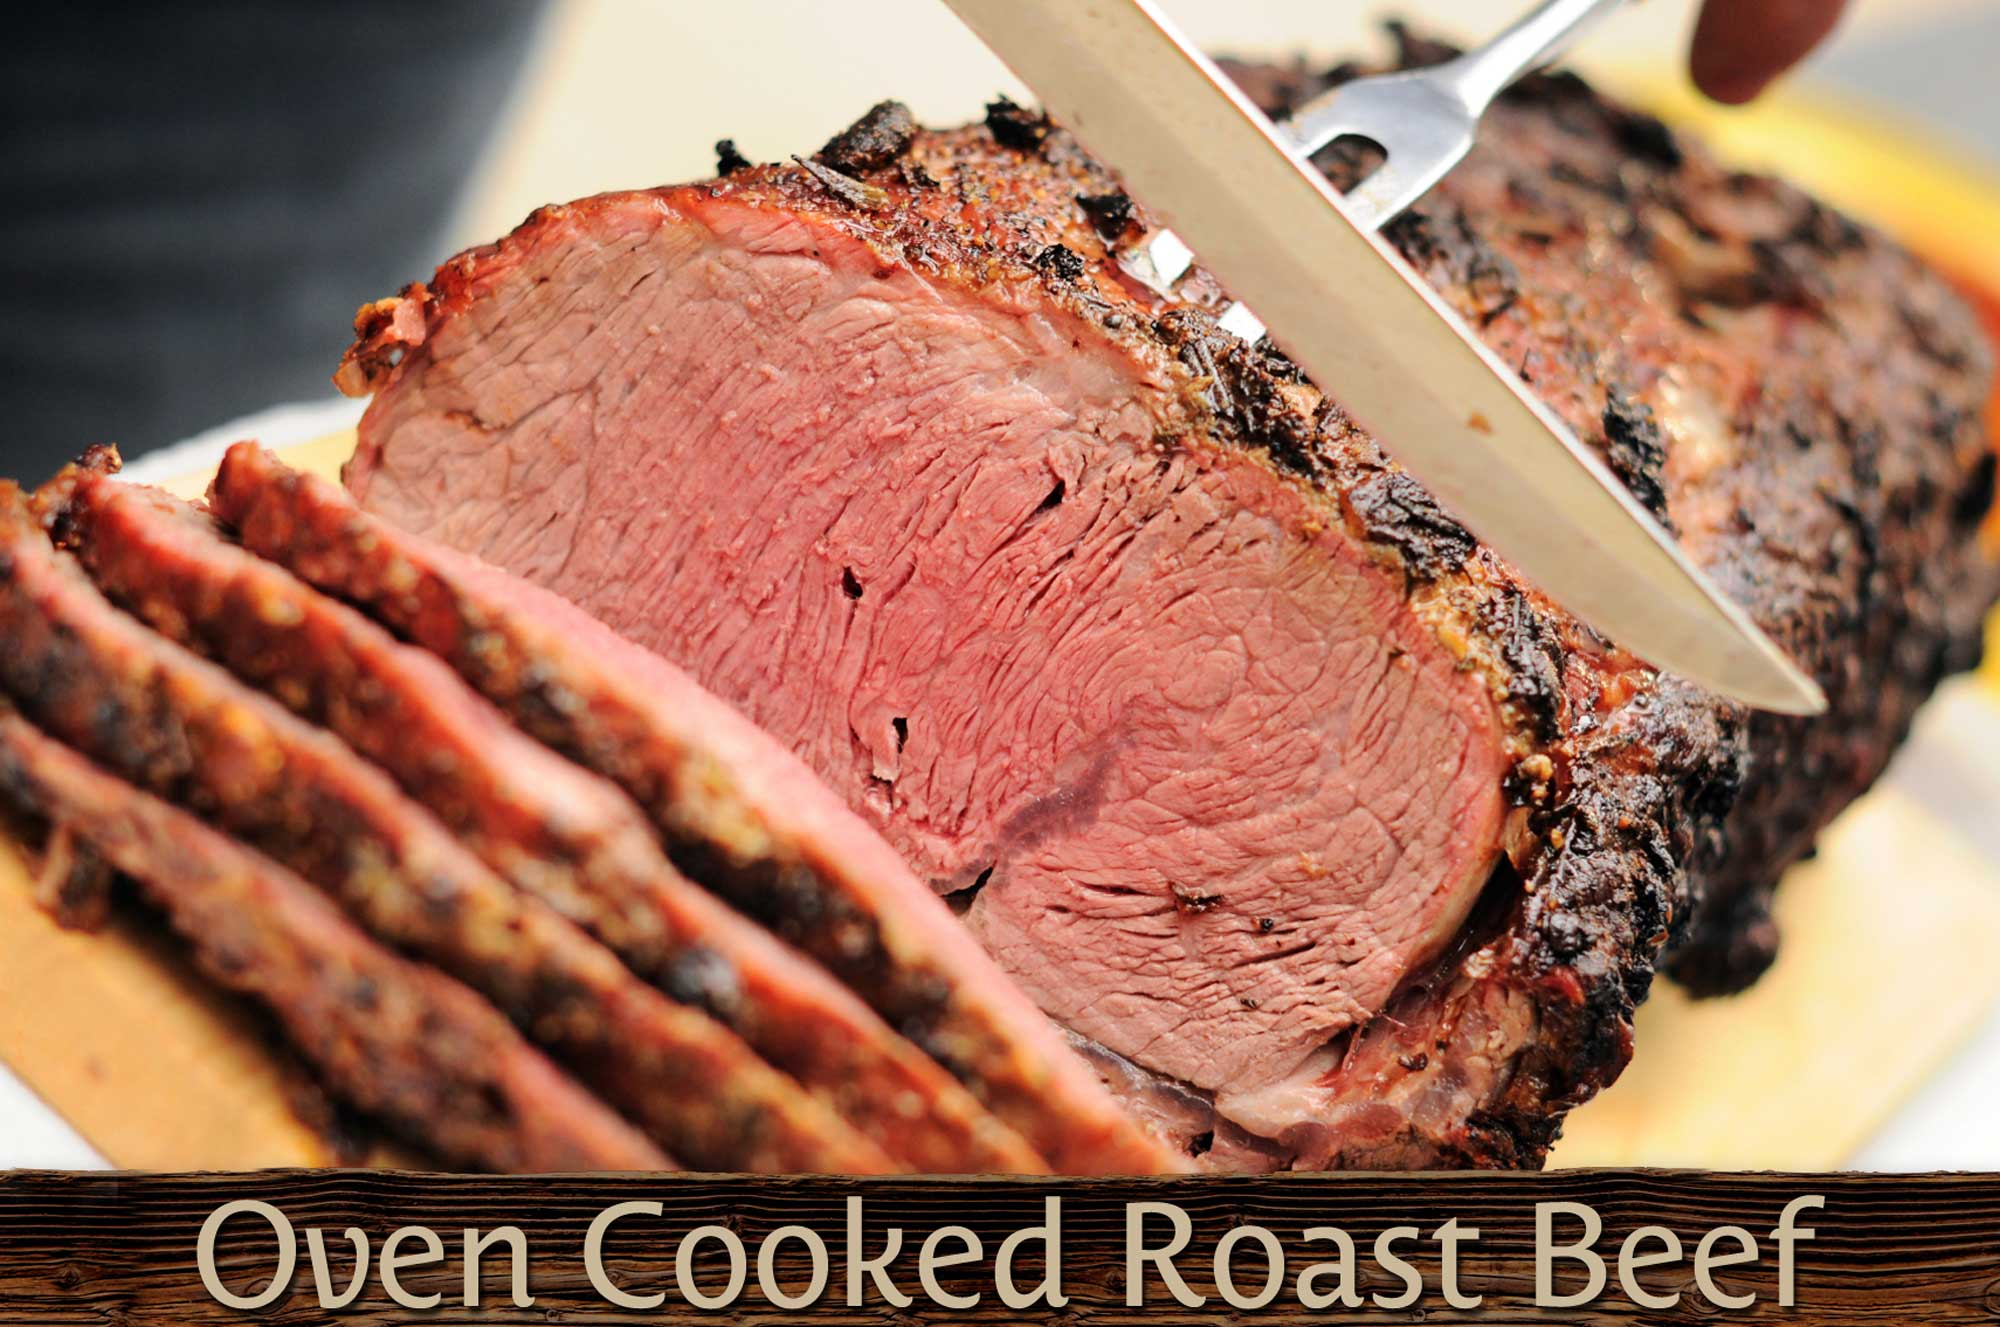 Oven Cooked Roast Beef